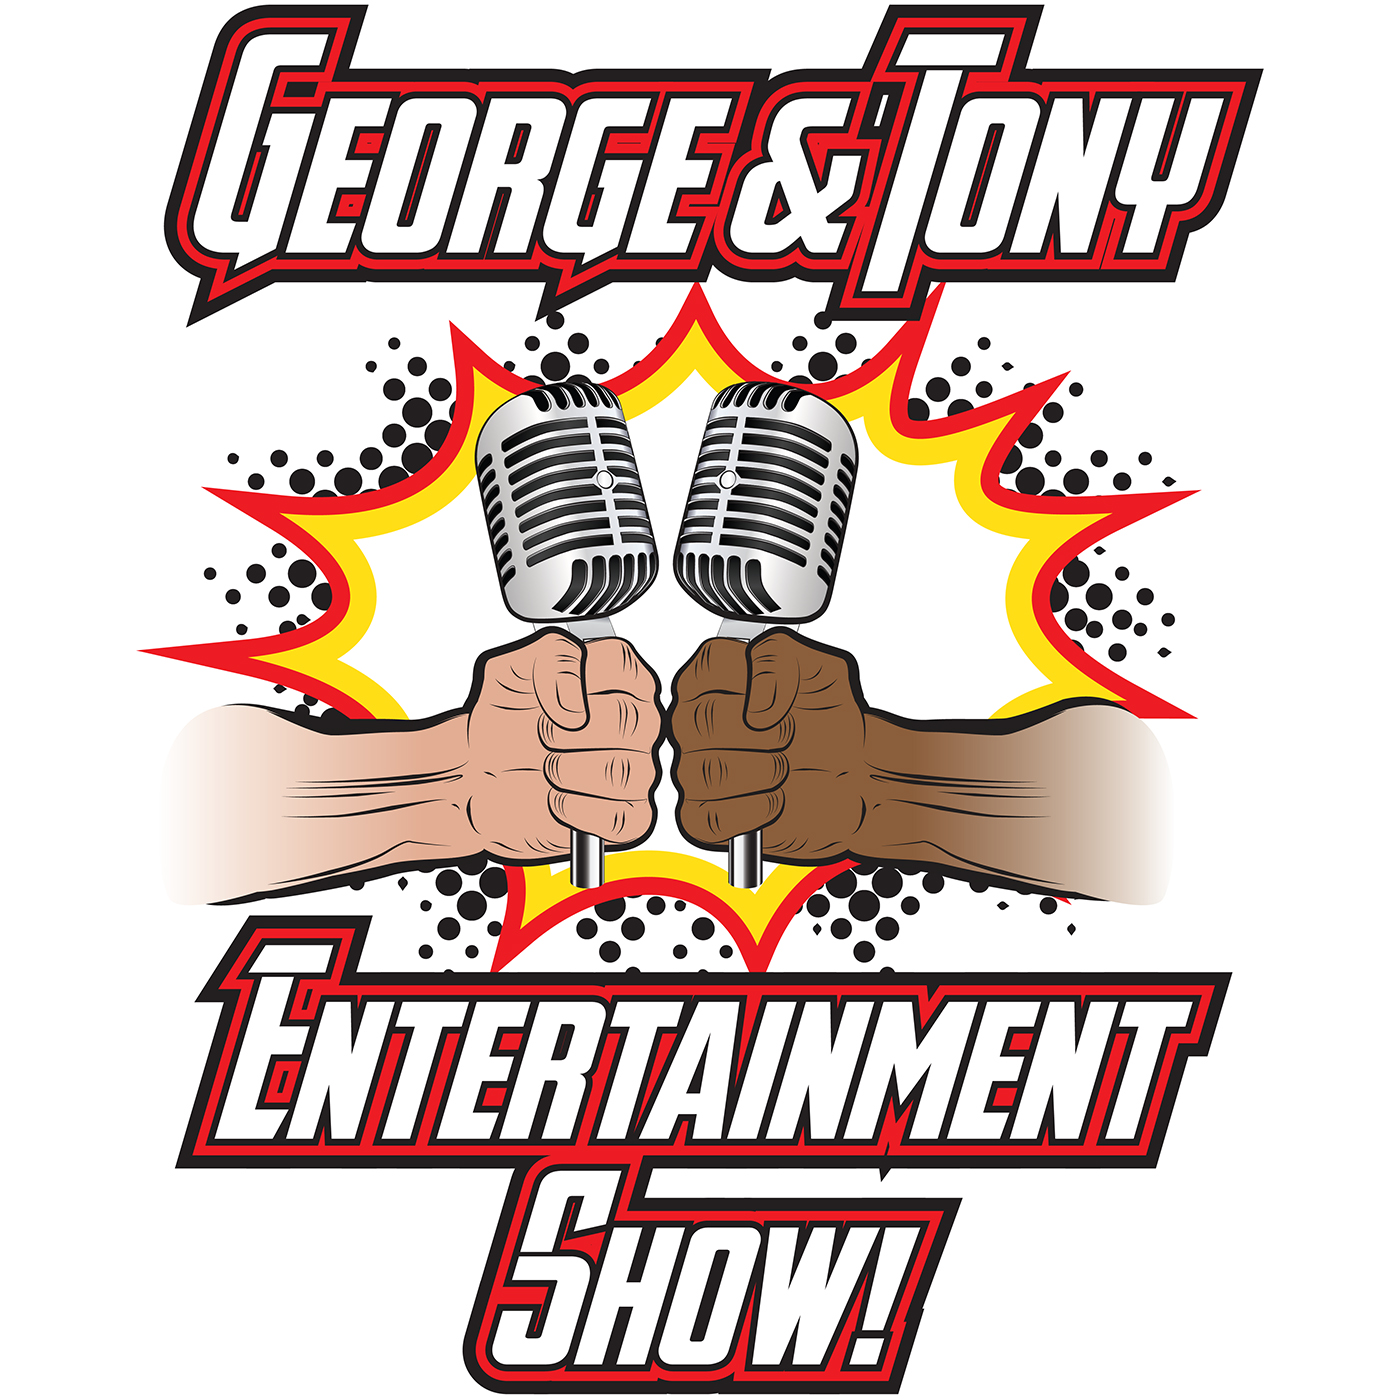 George and Tony Entertainment Show #135